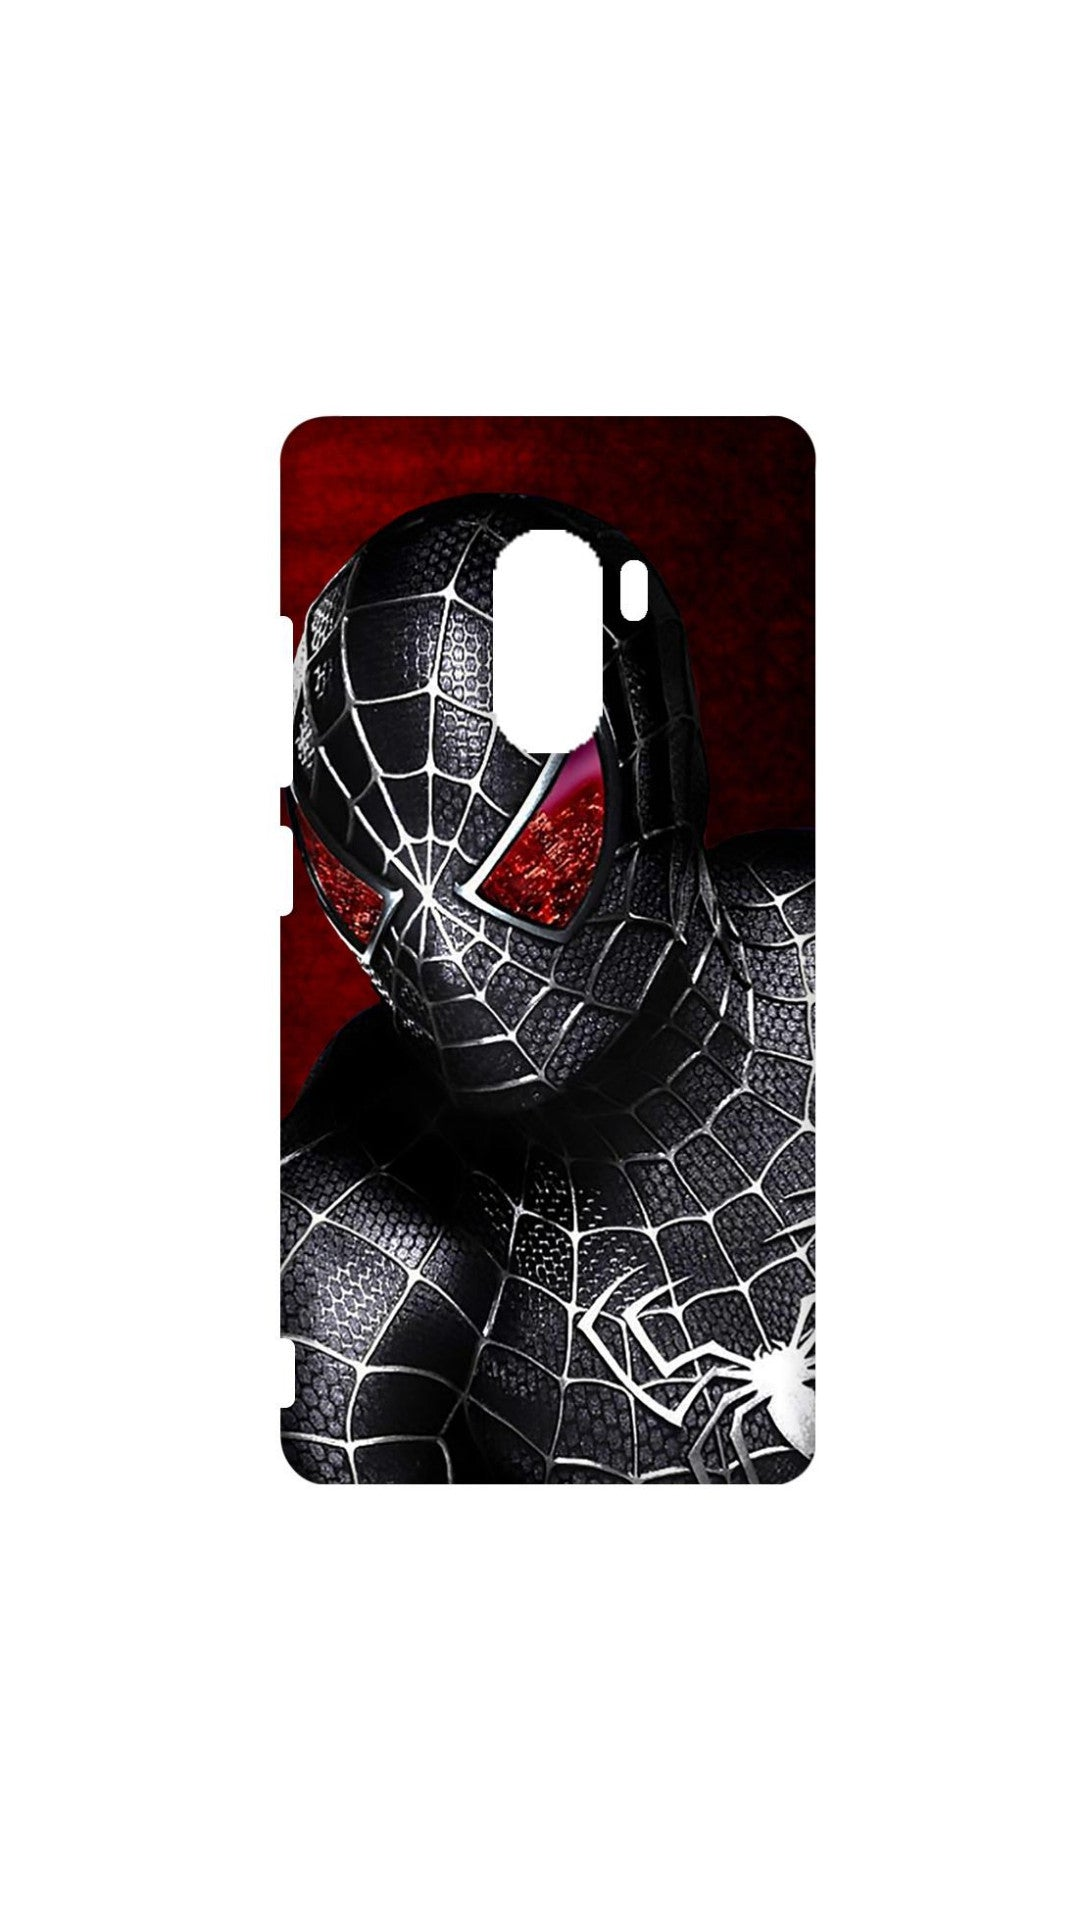 Spiderman Wallpaper Mobile Cover Case For Lenovo K4 Note Designermobilecovers